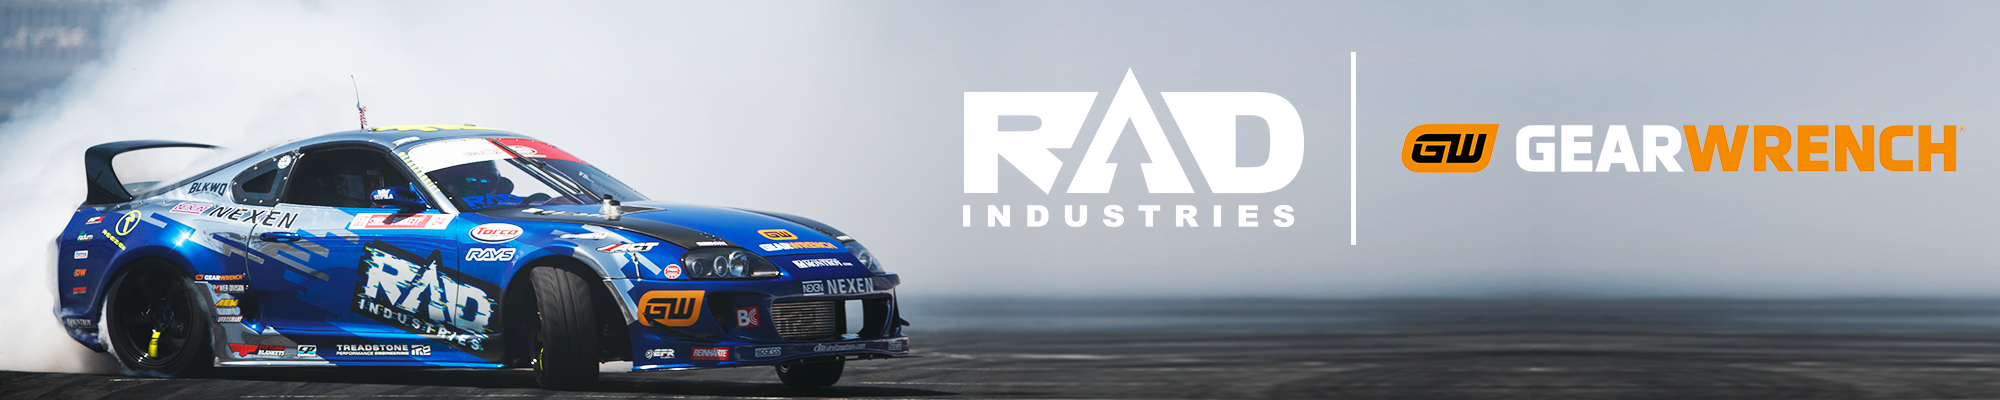 RAD Industries Is Officially A GEARWRENCH Tools Shop!